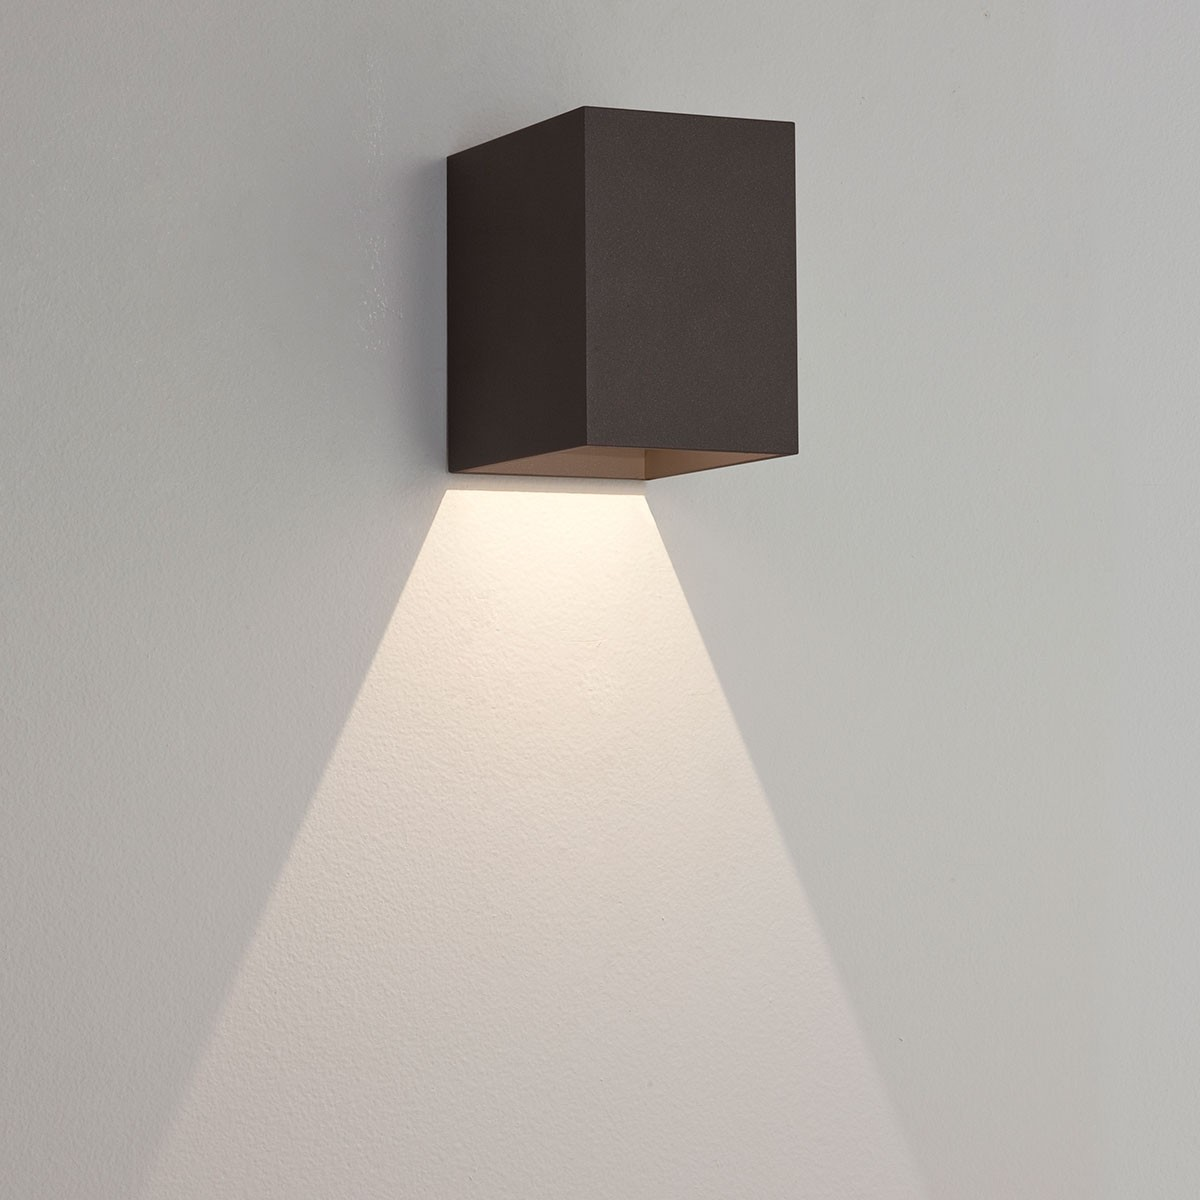 Luxury Outside Wall Lights : Astro Oslo 100 Black Outdoor LED Wall Light at UK Electrical Supplies.